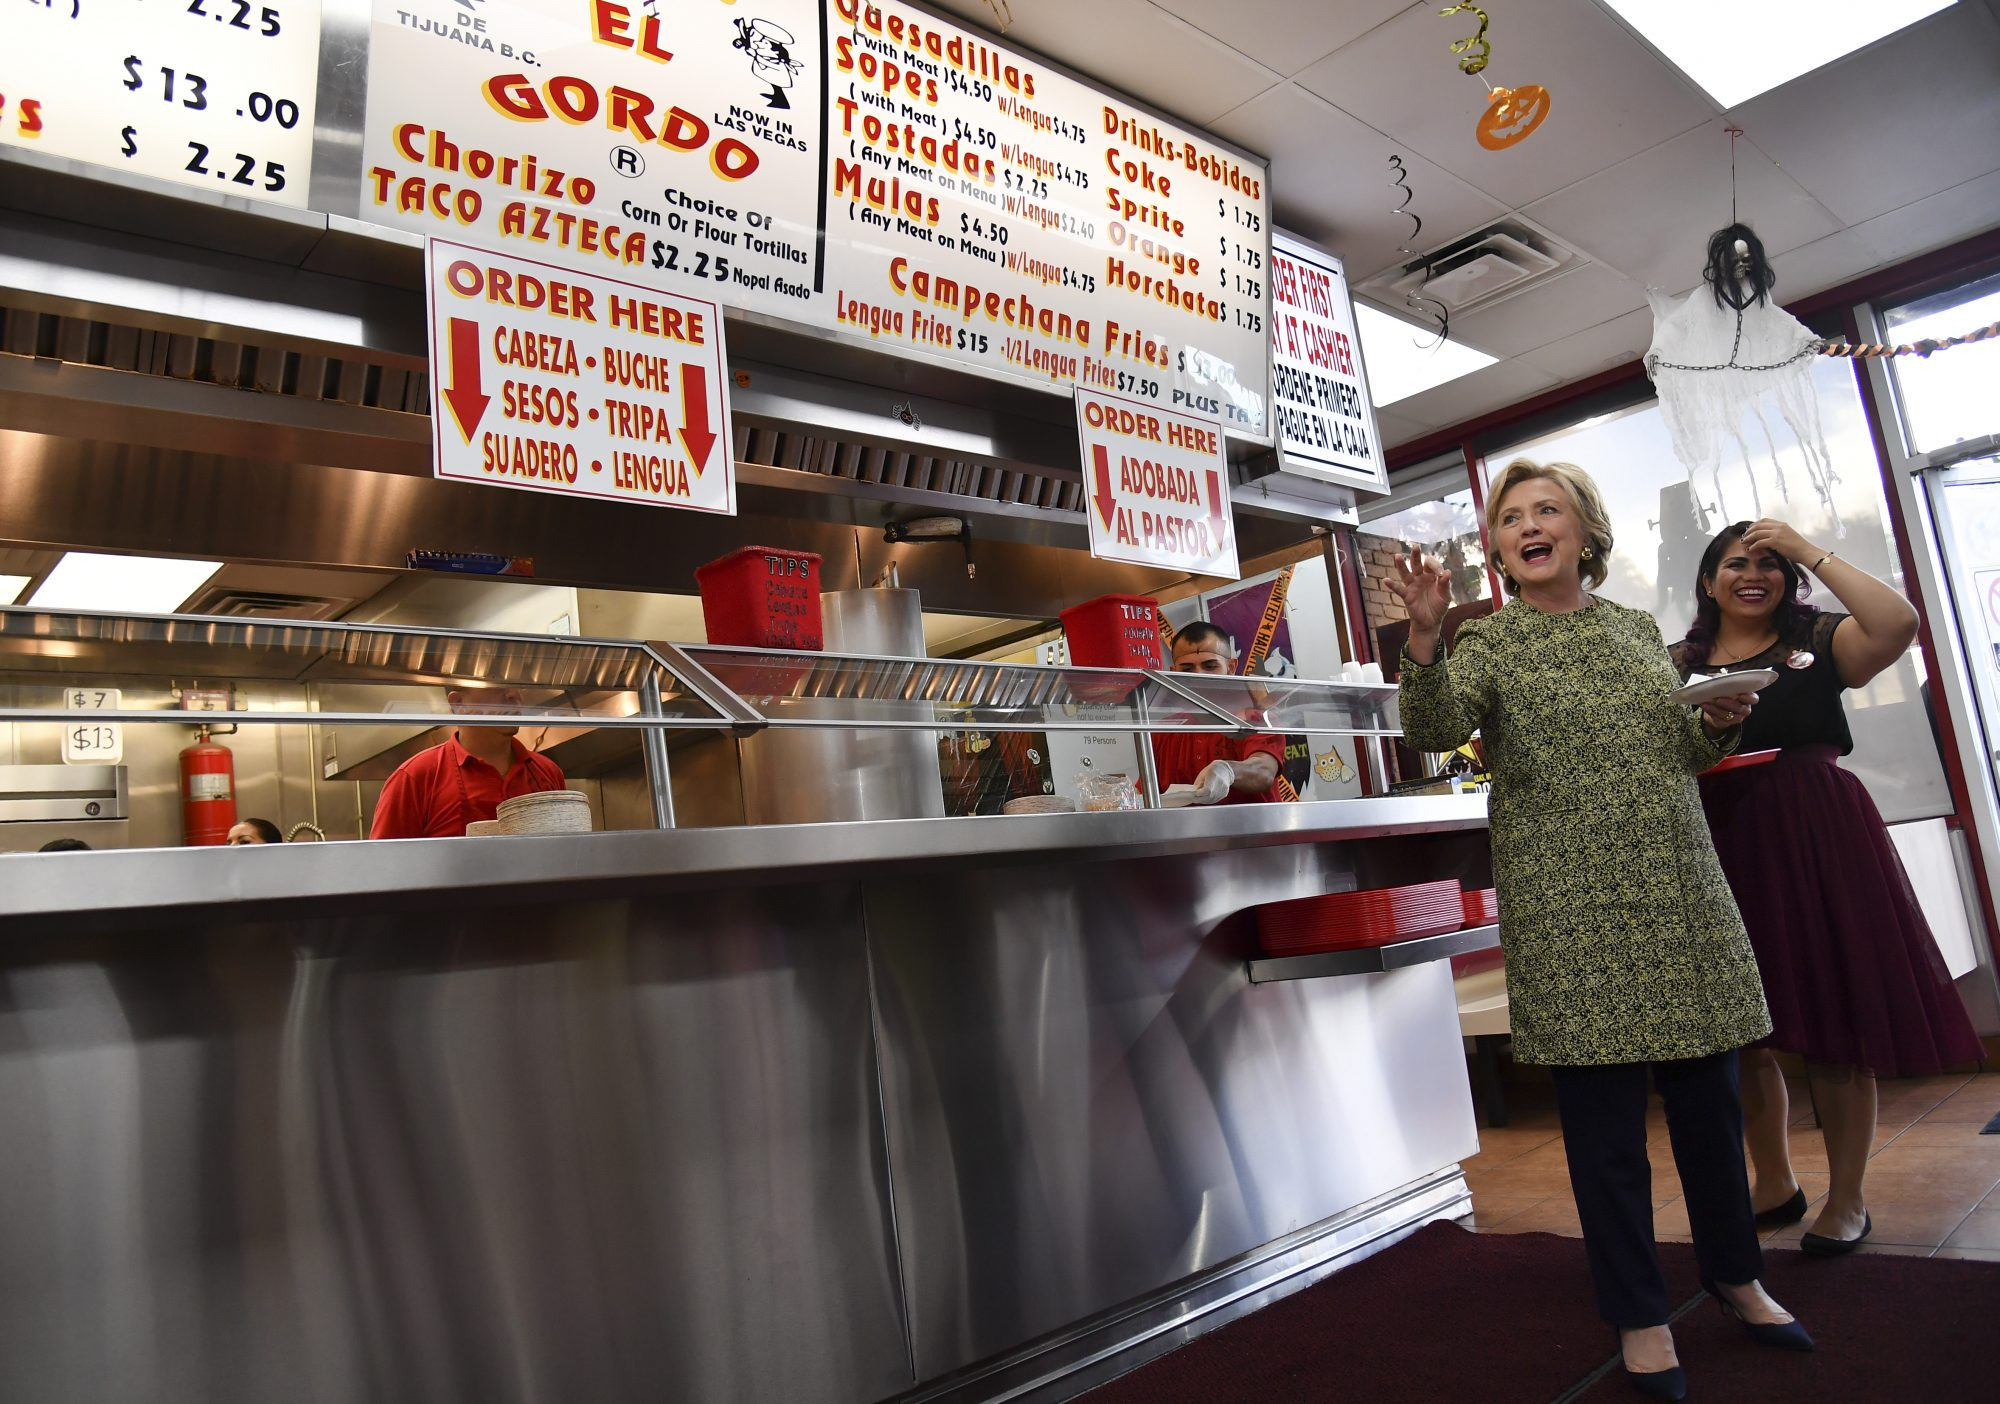 In Her New Book, Hillary Clinton Shares Everything She Ate on the Campaign Trail, Down to Her Go-To Condiment